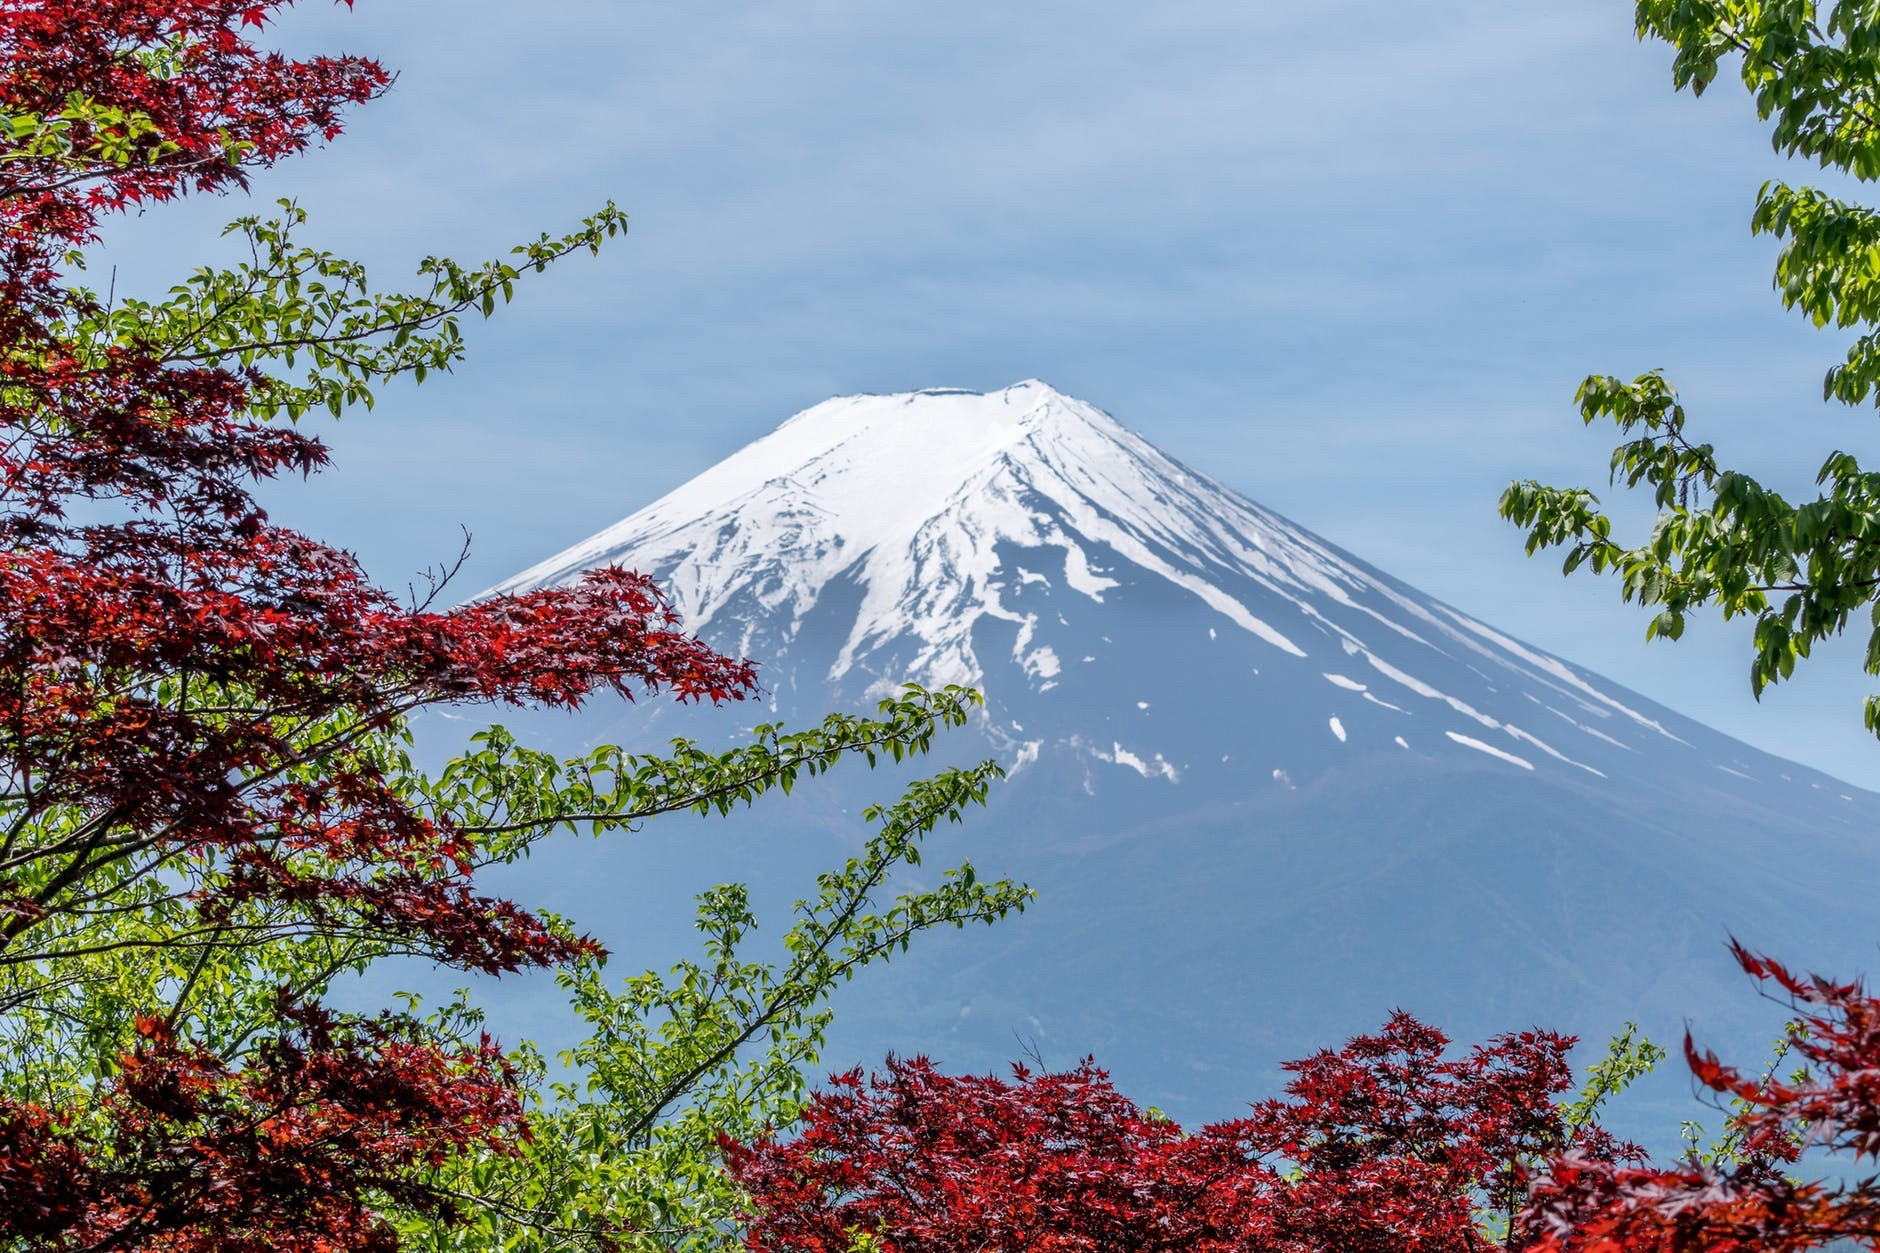 Flight Deal Round Trip From San Francisco Area to Tokyo #sanfrancisco #tokyo #2weeks